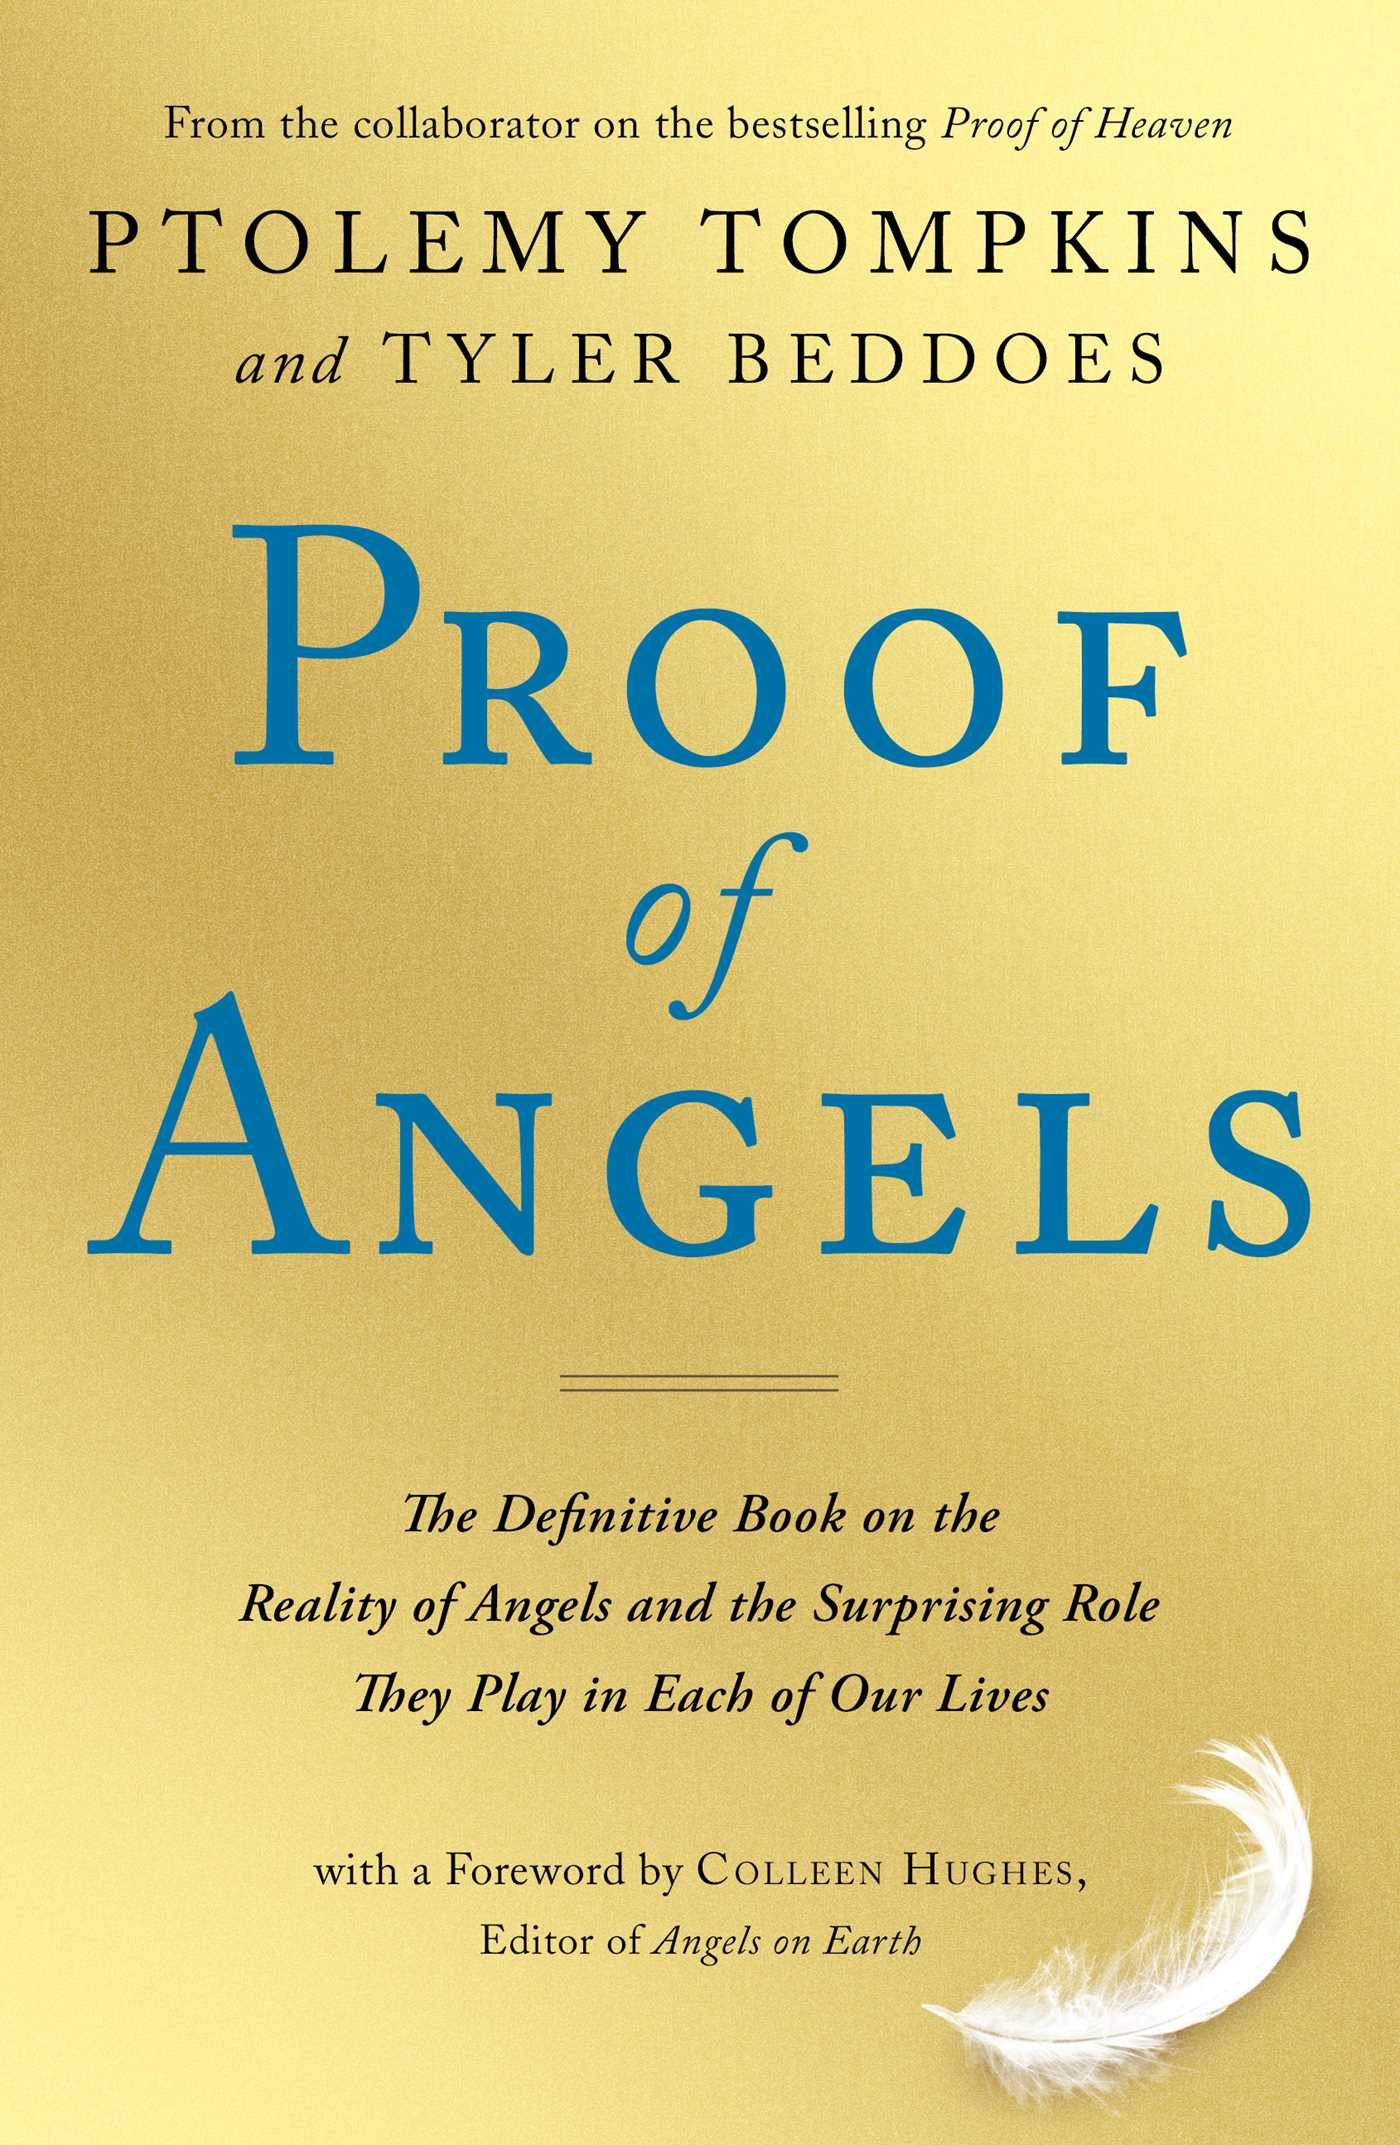 The Definitive Book On The Reality Of Angels And The Surprising Role They  Play In Each Of Our Lives